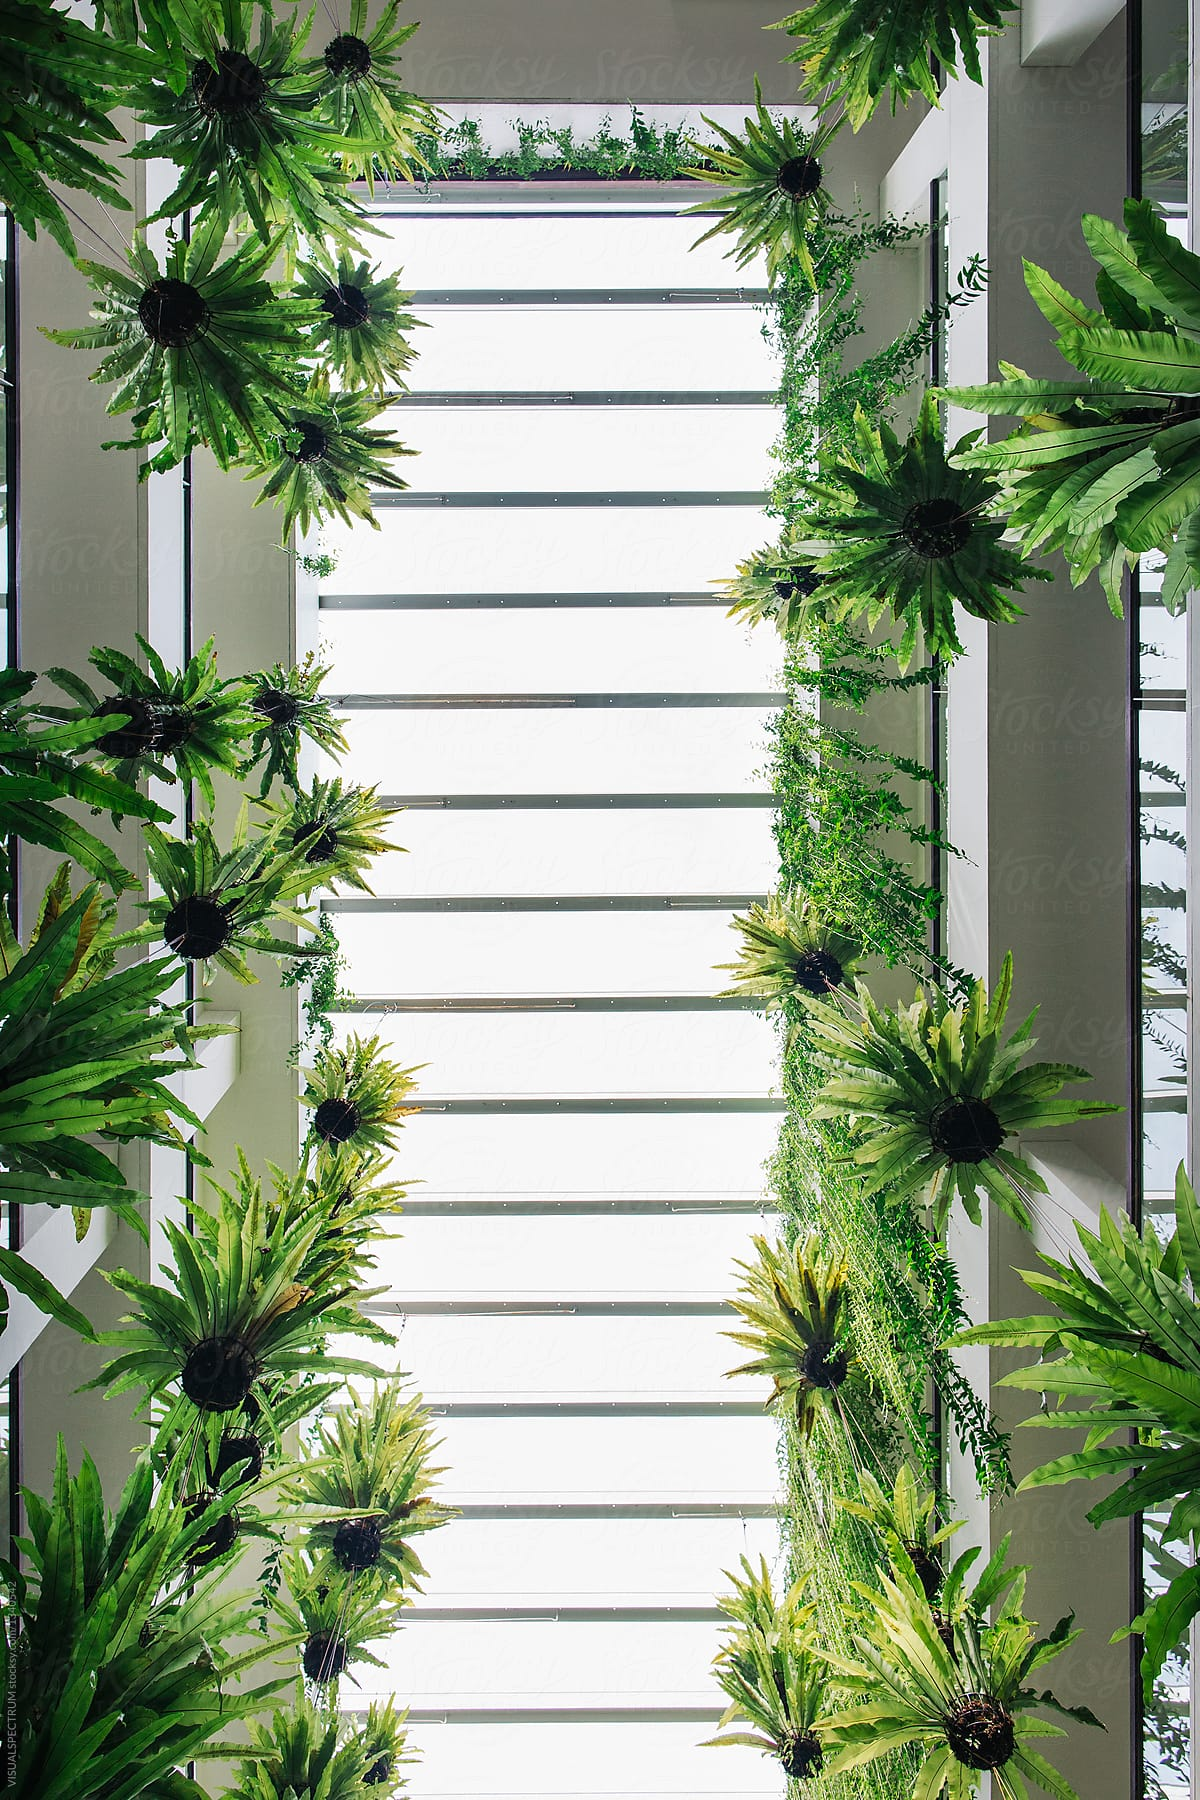 Vertical Garden   Green Tropical Plants Hanging In Bright Building By  VISUALSPECTRUM For Stocksy United